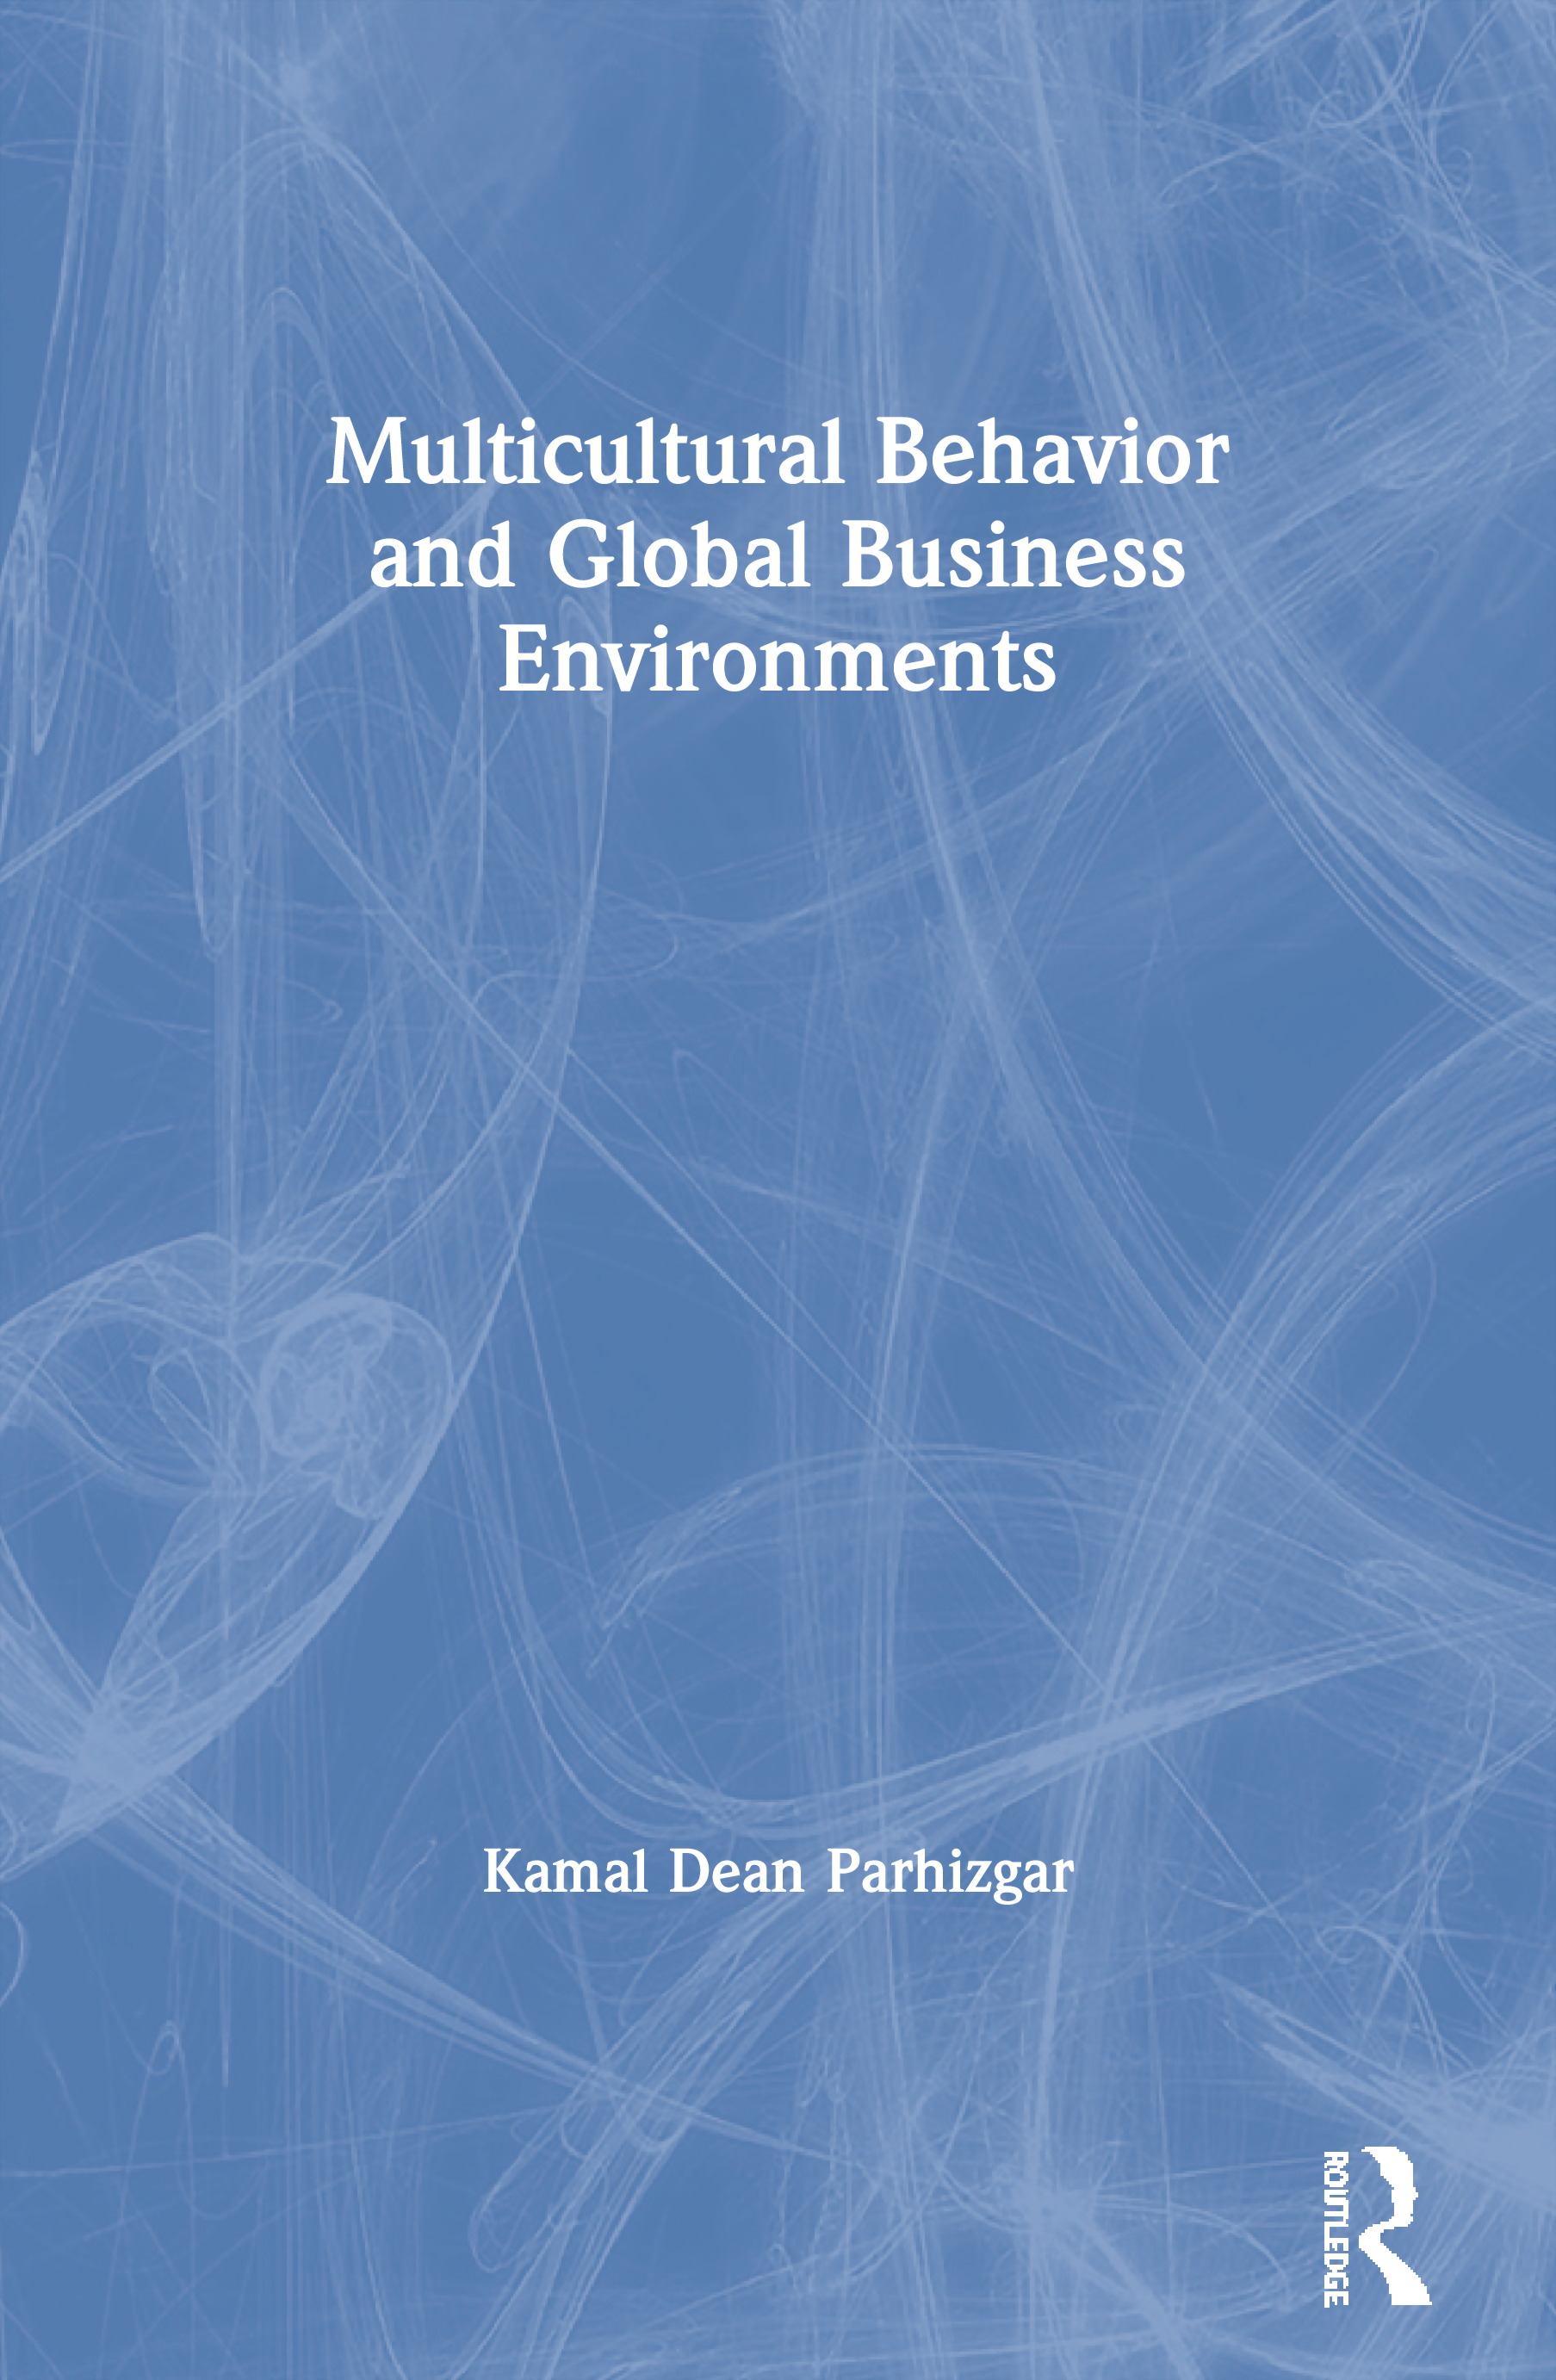 Multicultural Behavior and Global Business Environments: 1st Edition (Paperback) book cover